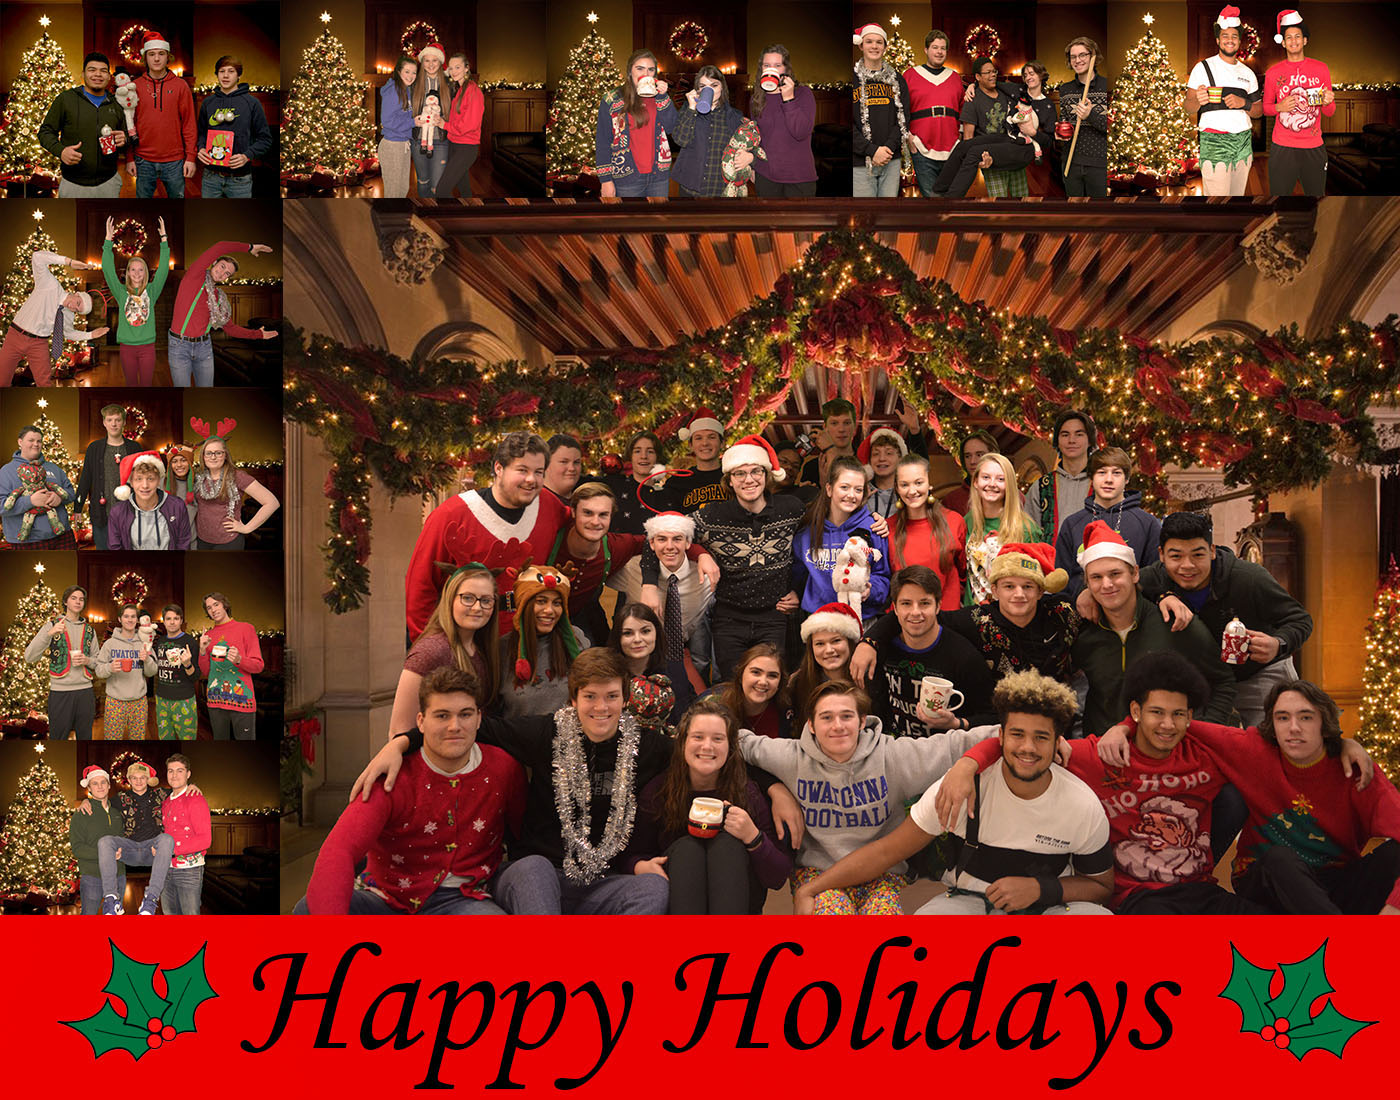 Wishing all the Magnet readers a wonderful & safe holiday!  With Love, OHS Magnet